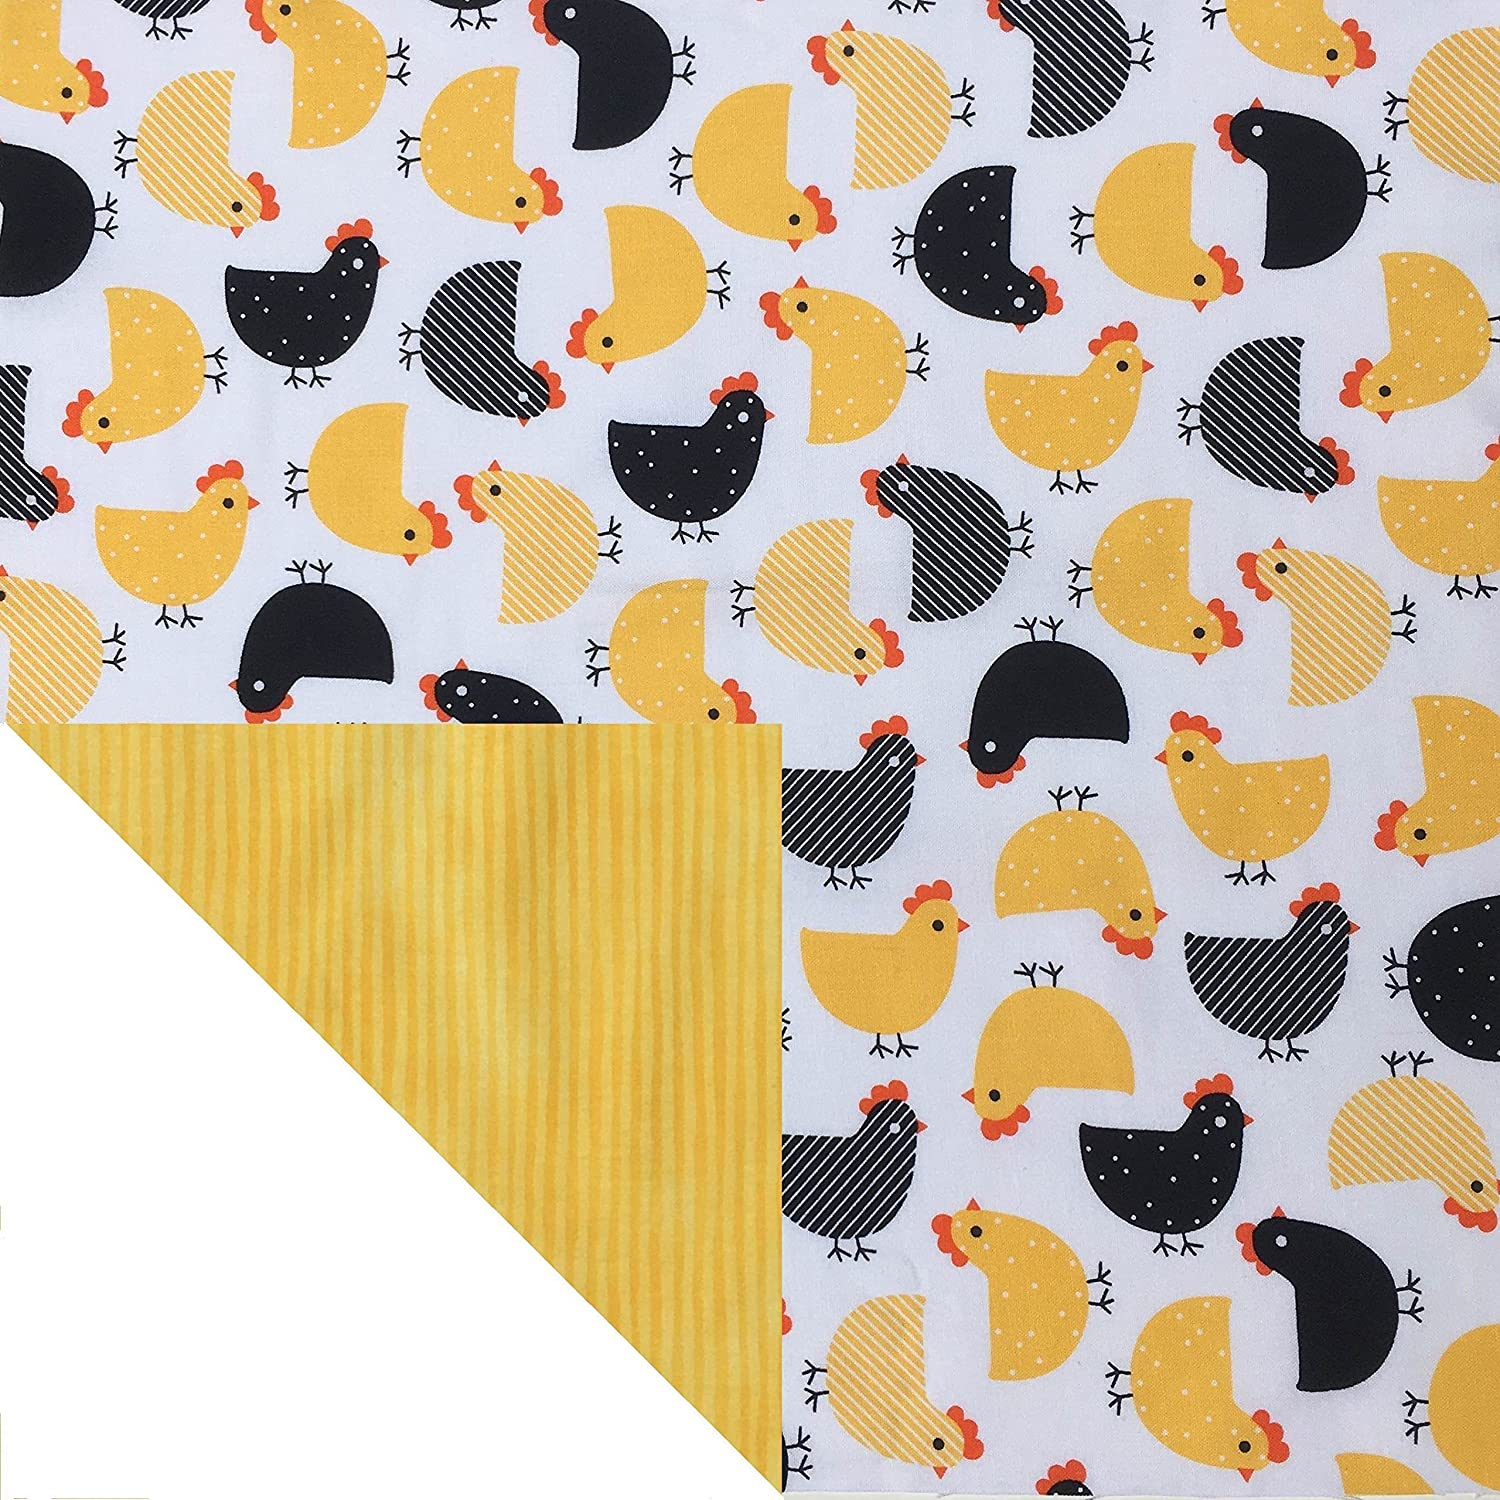 Construction and Tools Double Sided Napkin Cotton Cloth Napkins for Kids